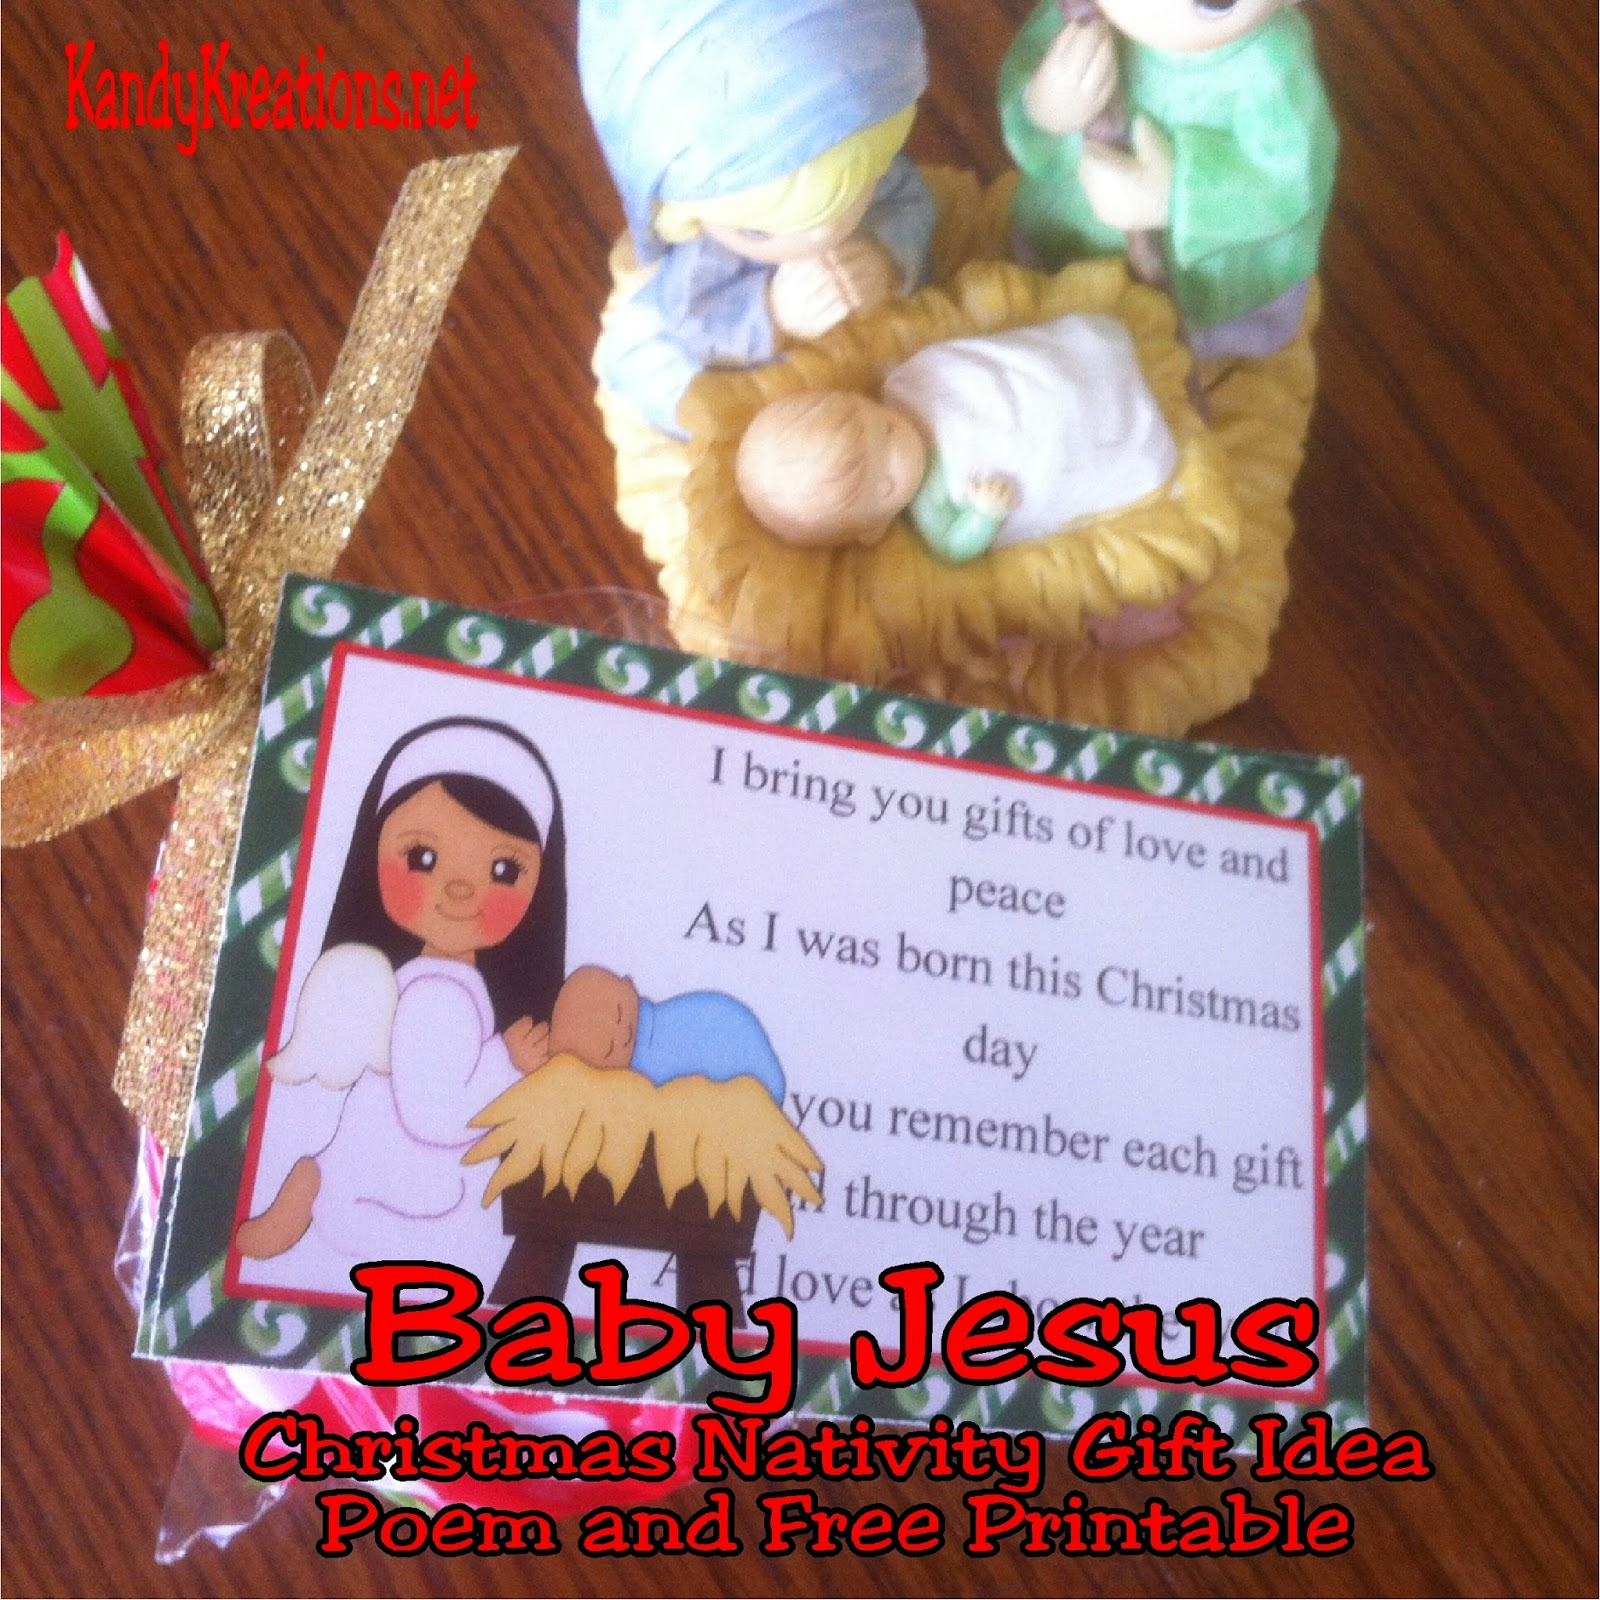 The twelve days of Christmas have come to a close with this last gift in our Nativity advent gift idea for neighbors, friends, and family. Day twelve is a gift of the Baby Jesus and some yummy chocolate presents.